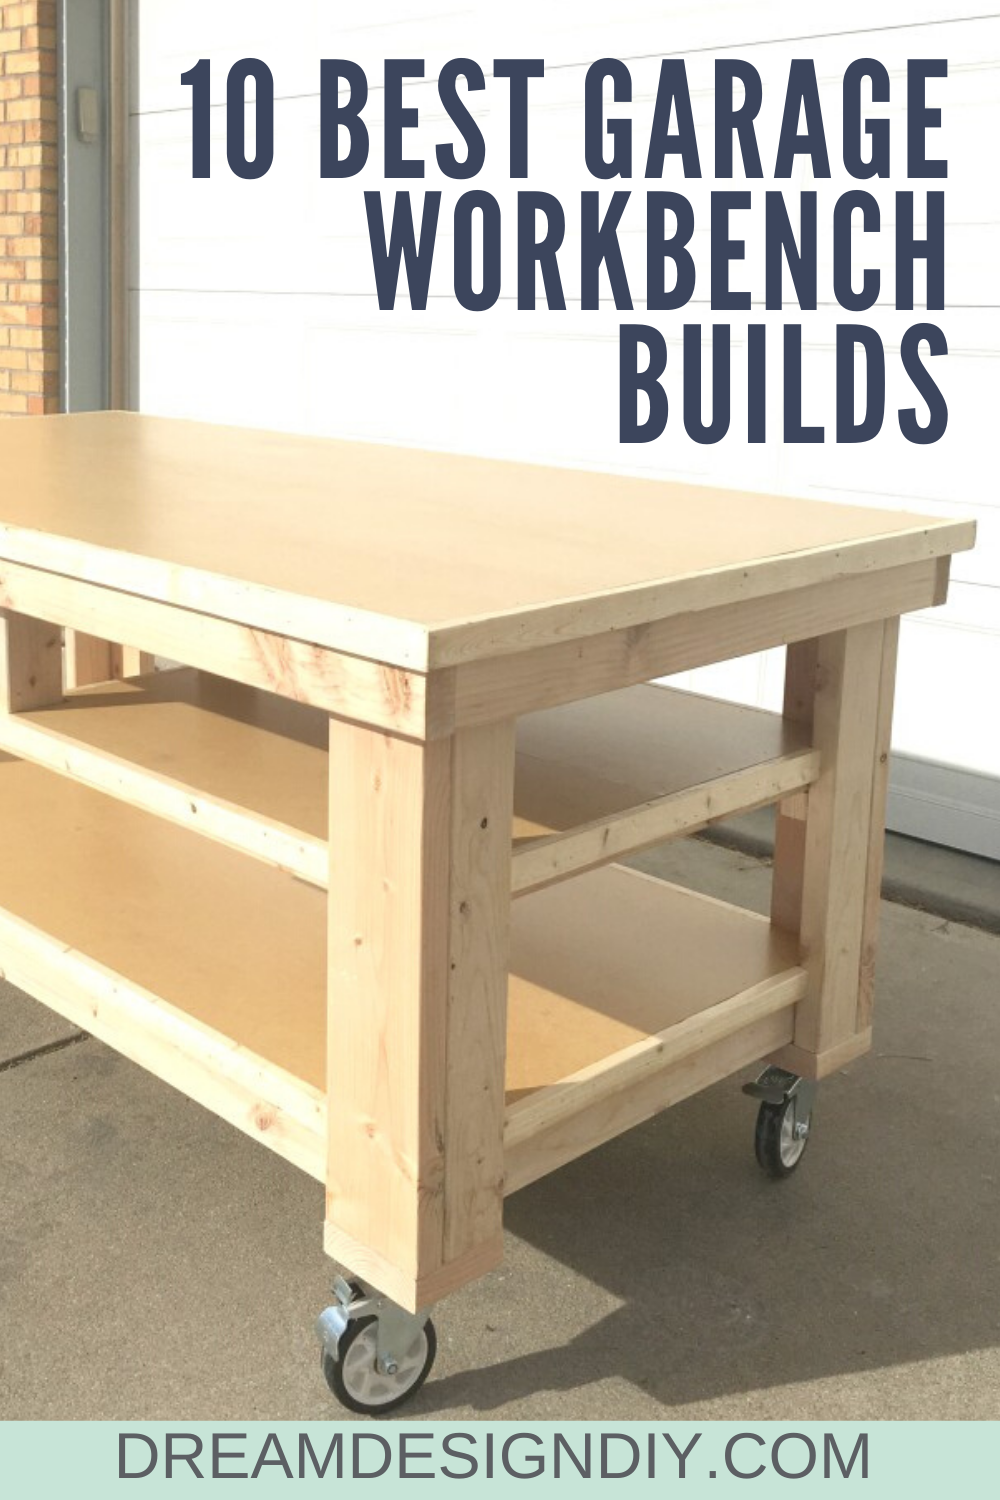 The 10 Best Garage Workbench Builds In 2020 Woodworking Table